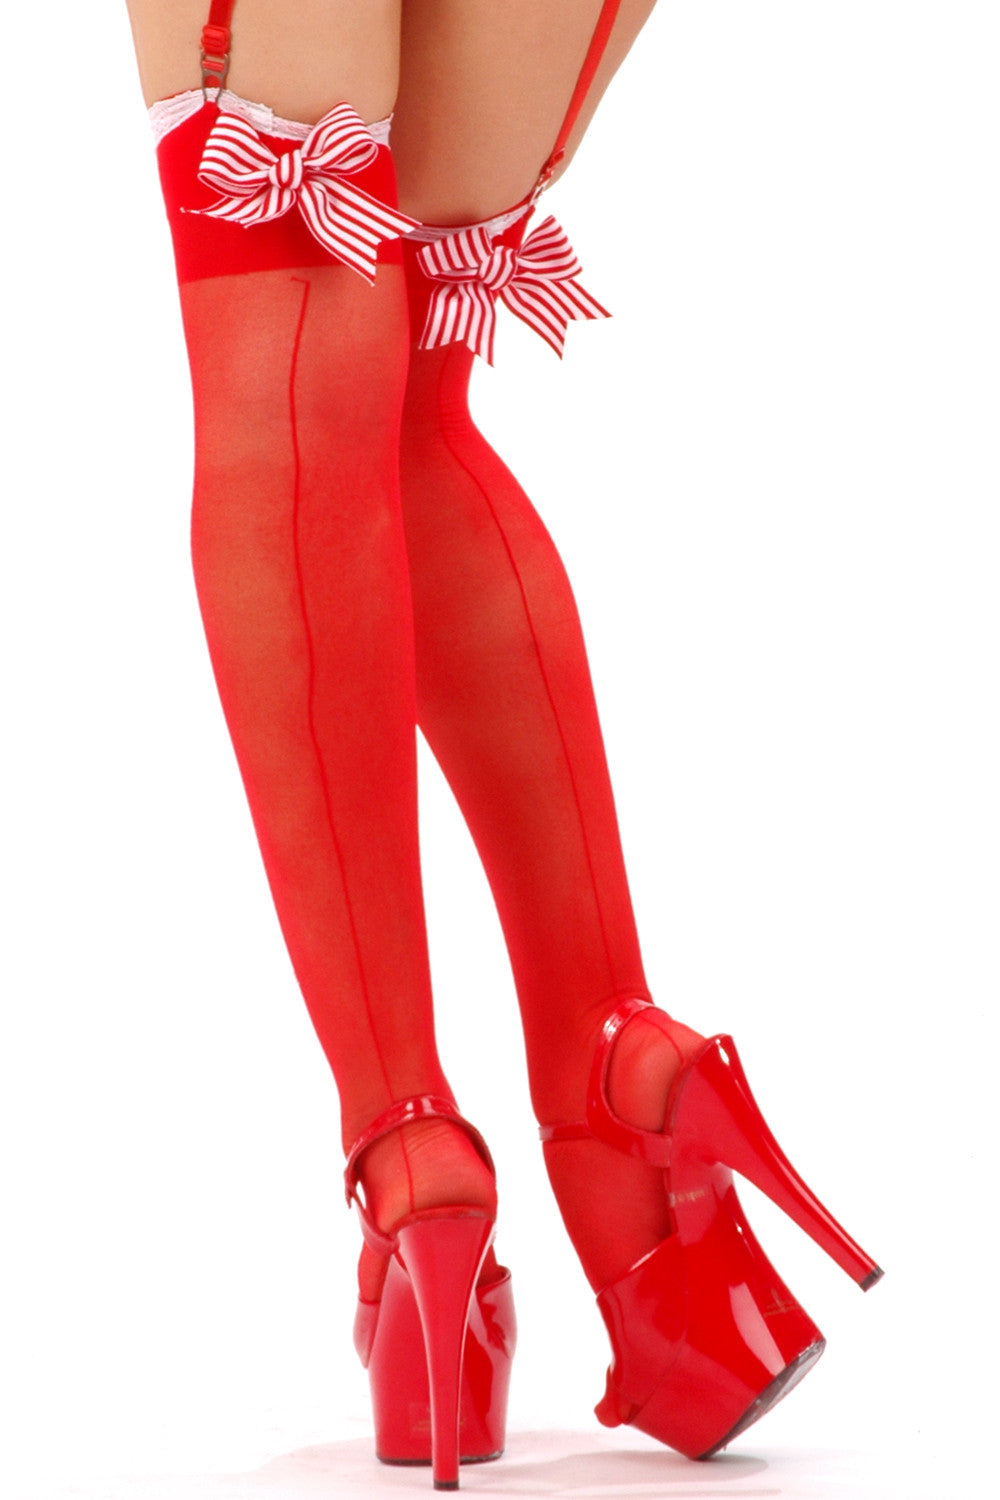 Sheer Seamed Peppermint Stockings